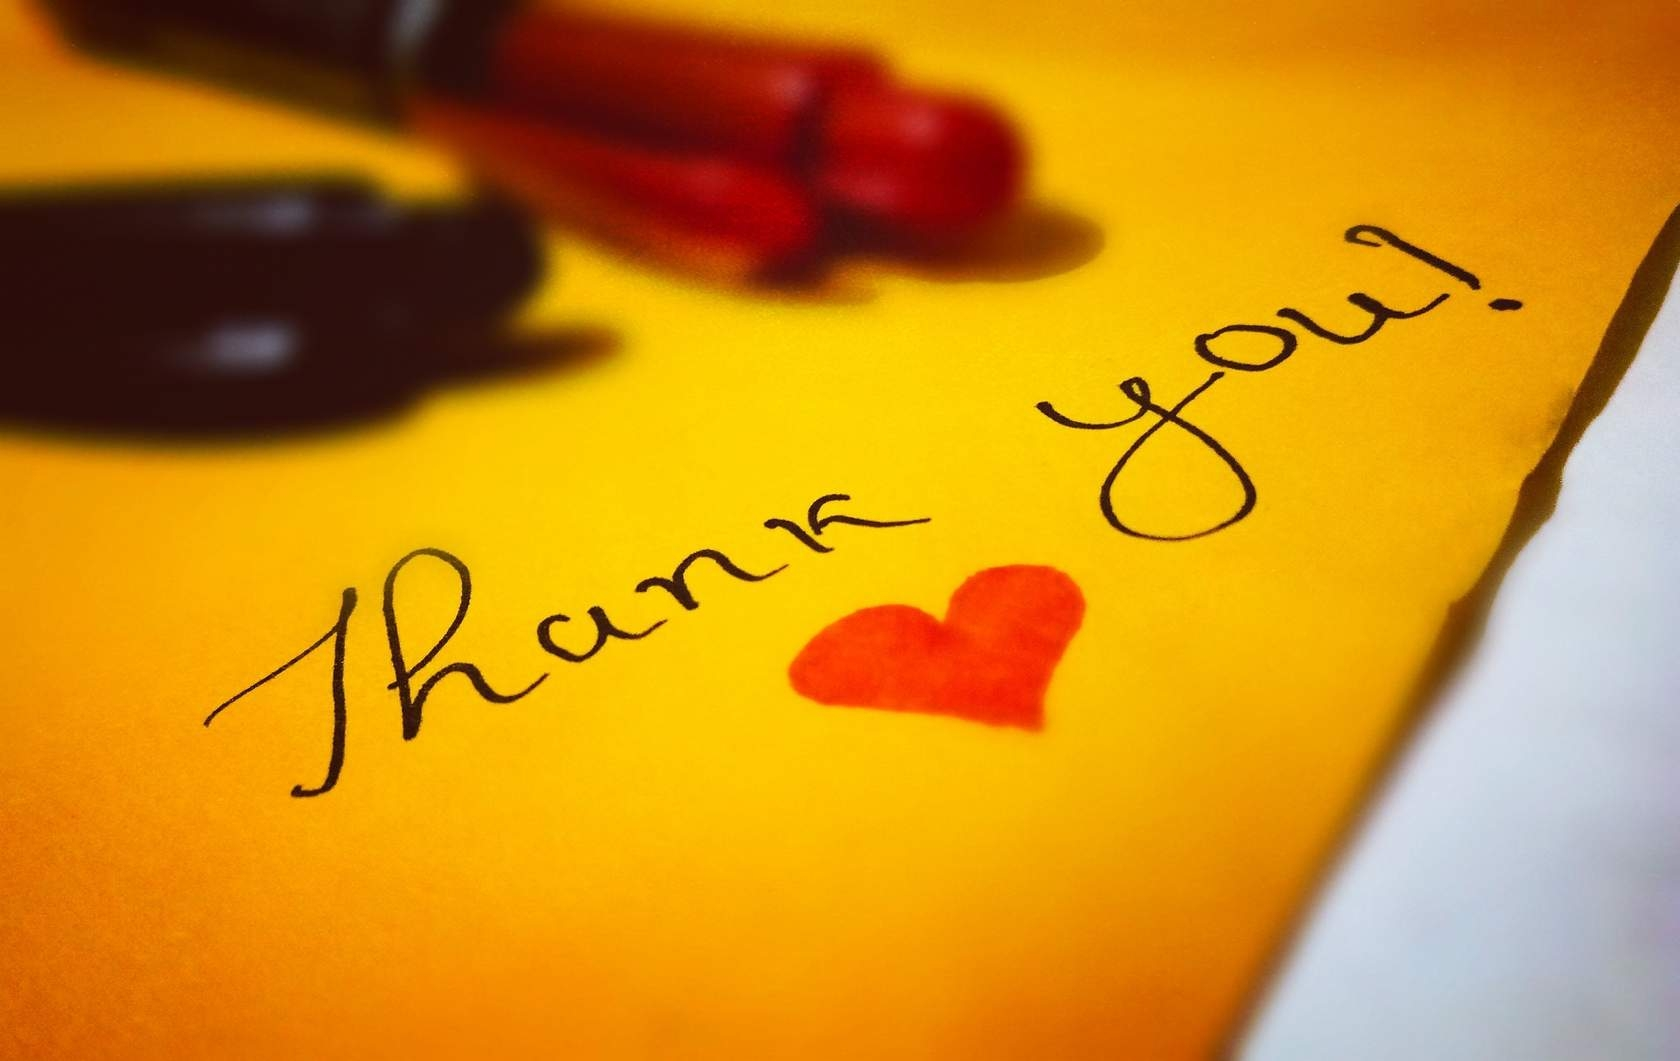 A handwritten note or customized email thanking your volunteers and supporters for their efforts